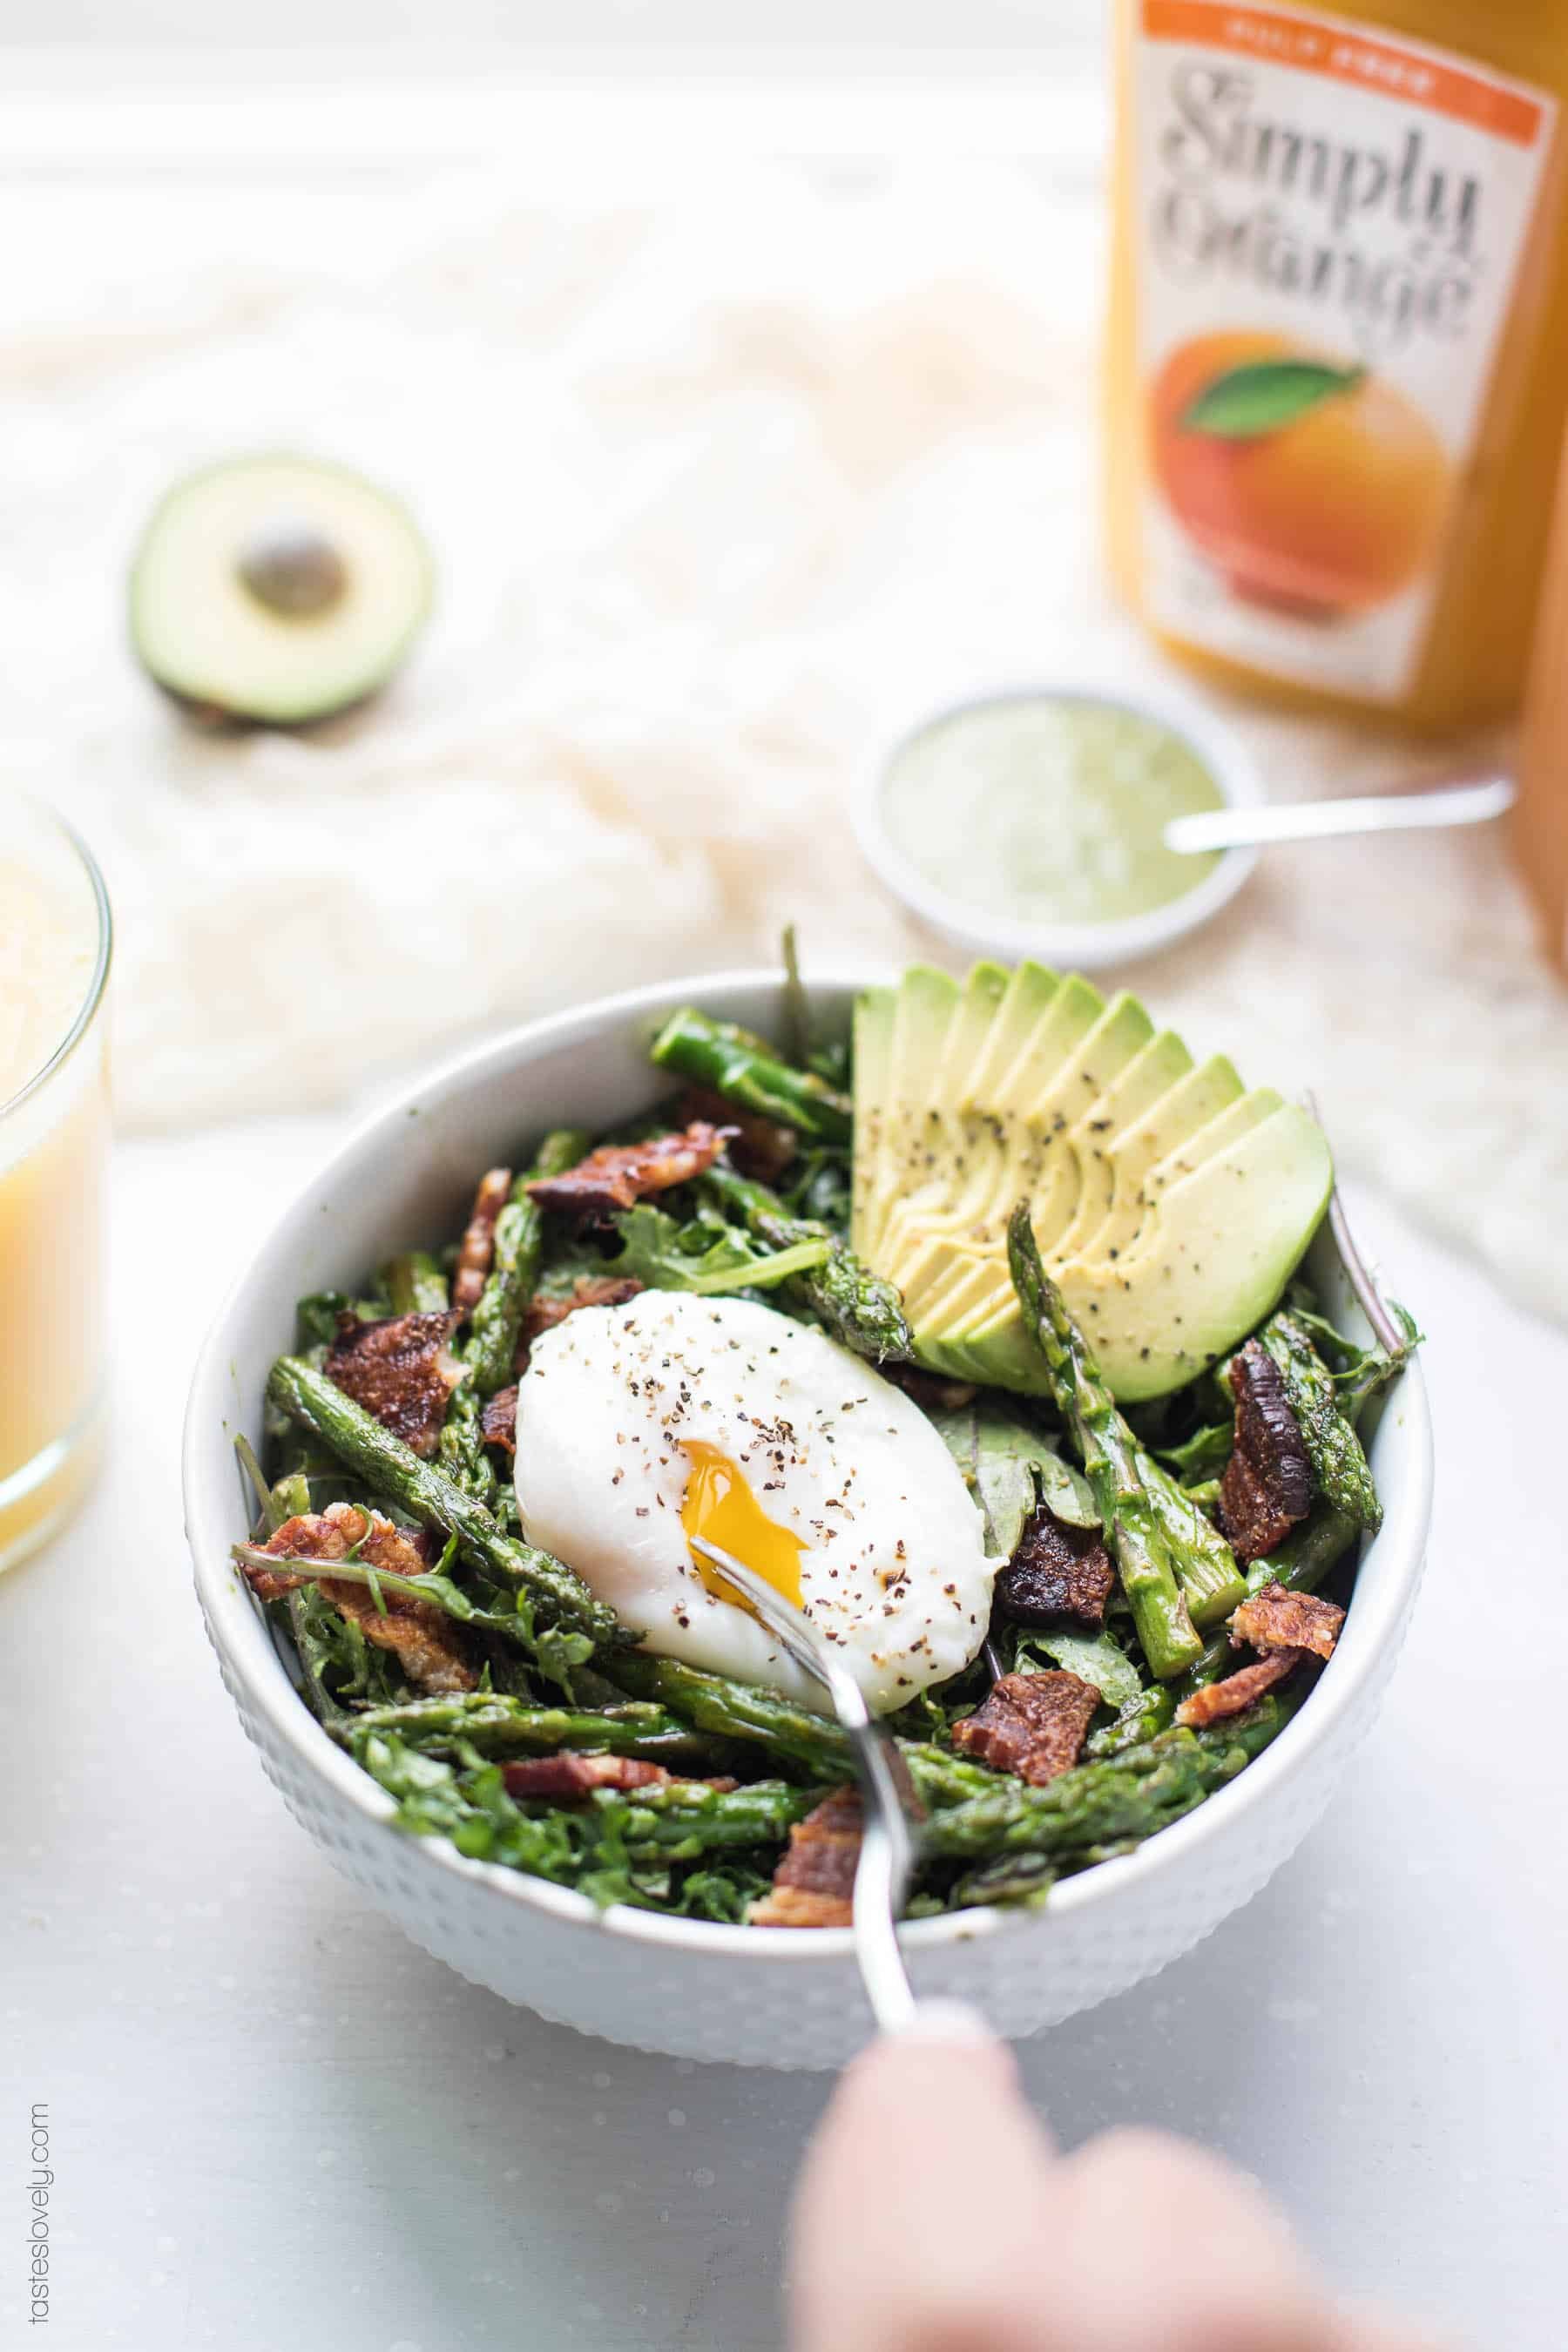 Paleo + Whole30 Brunch Kale Salad - baby kale tossed in an herby green dressing topped with bacon, asparagus and a poached egg (gluten free, grain free, dairy free, sugar free, clean eating)